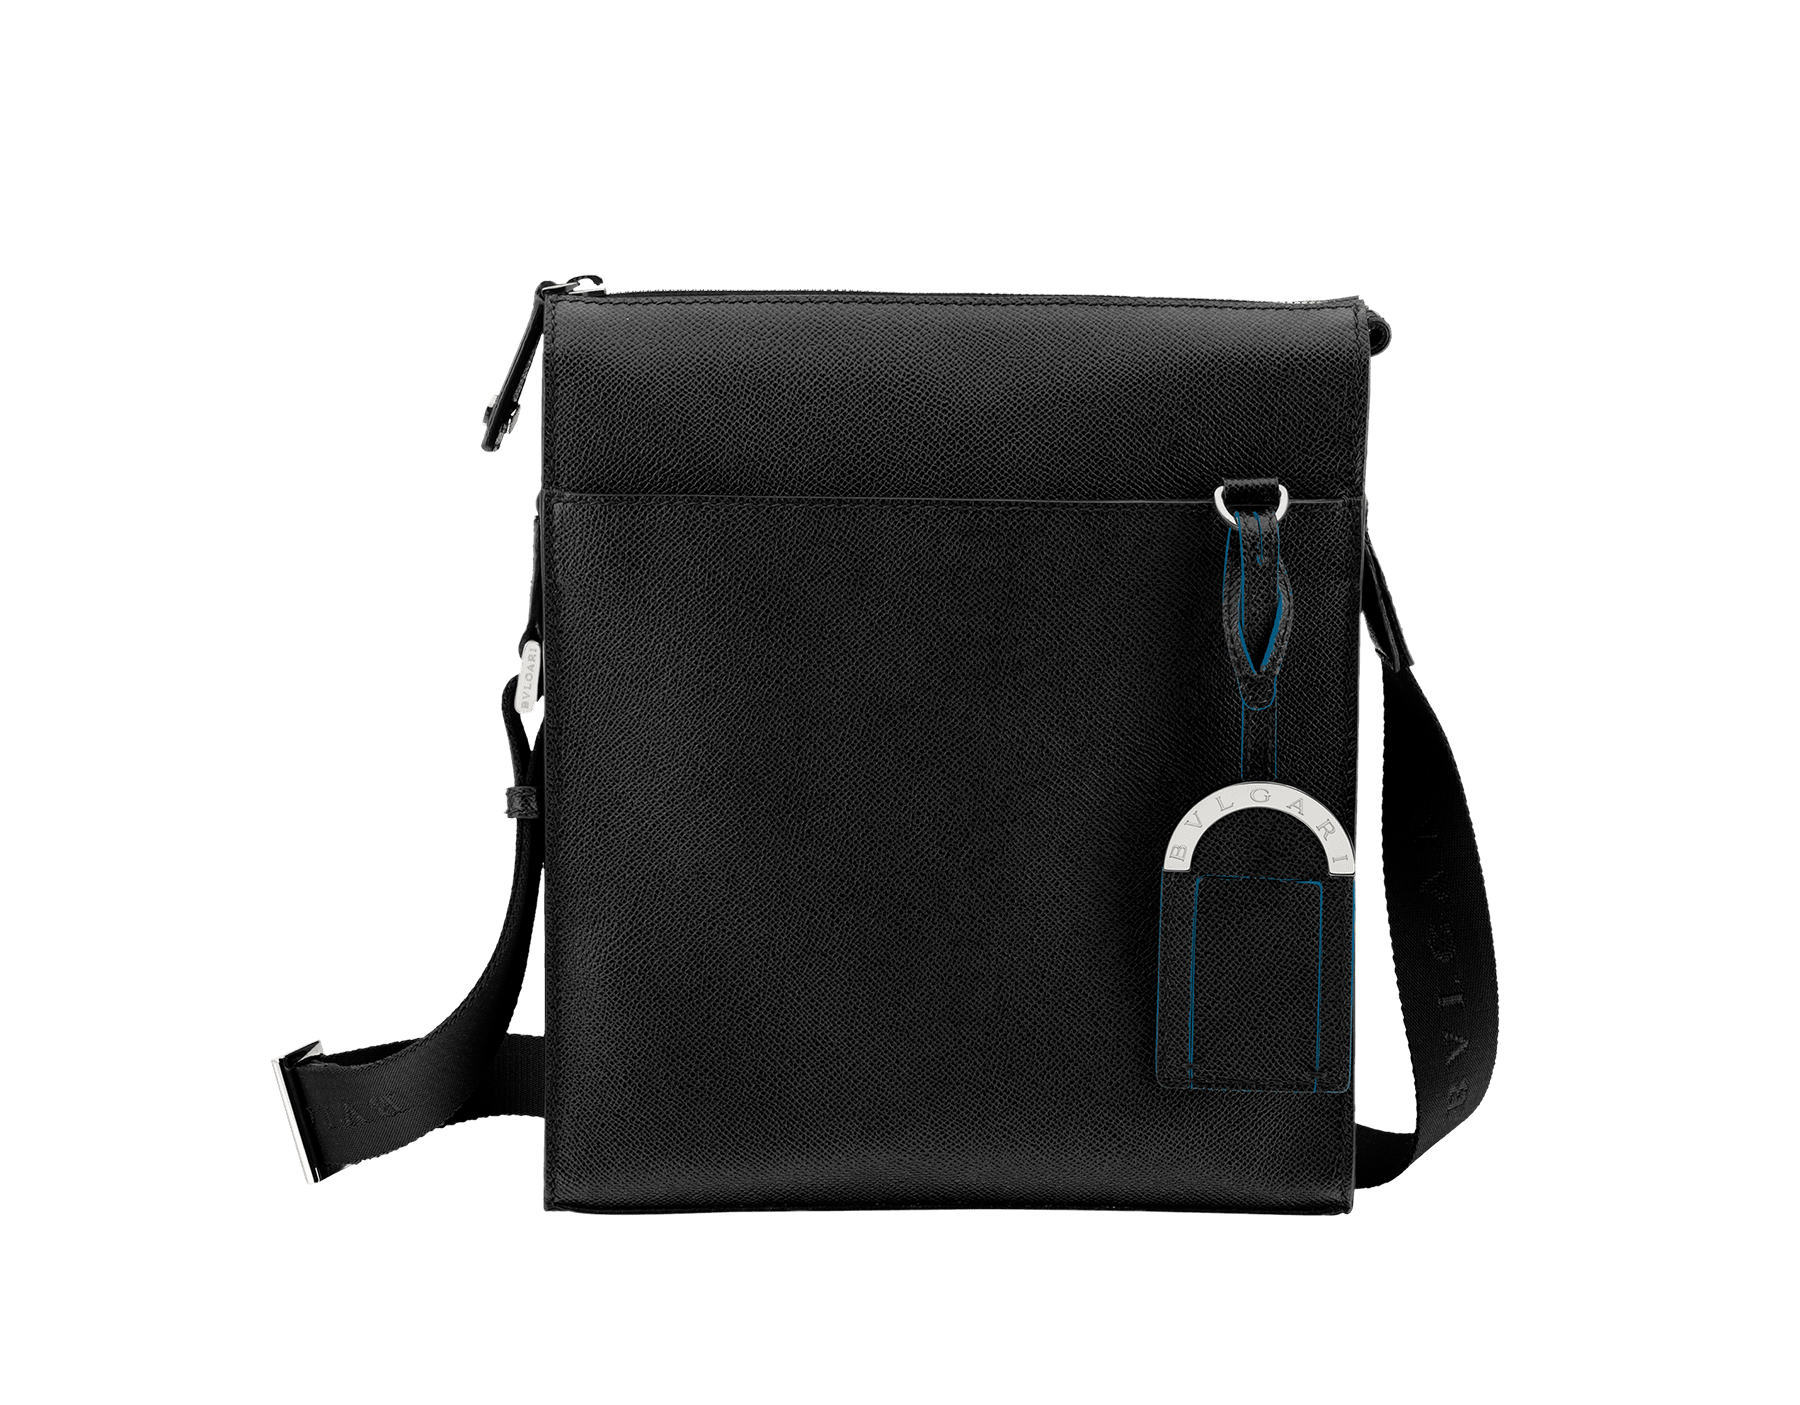 Black grain calf leather zip-top messenger bag with brass palladium hardware, two open pockets and the Bulgari logo metal tag inside. One open outside pocket, iconic detachable label tag and adjustable shoulder strap. 37628 image 1